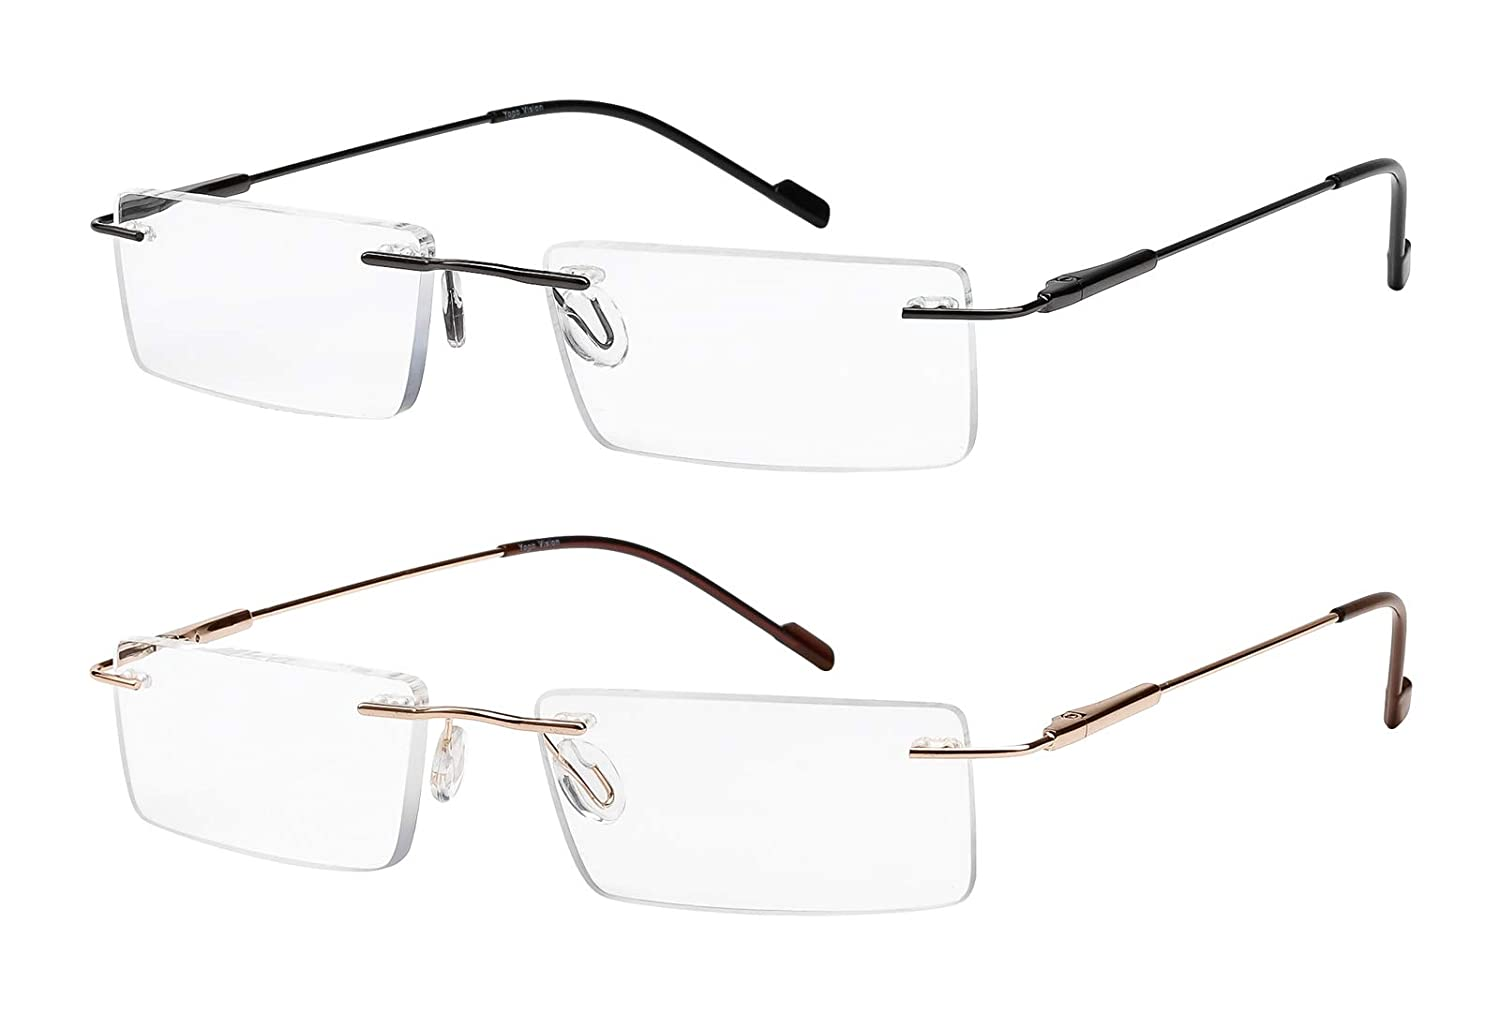 Success Eyewear Reading Glasses Rimless Ultra Lightweight for Men and Women